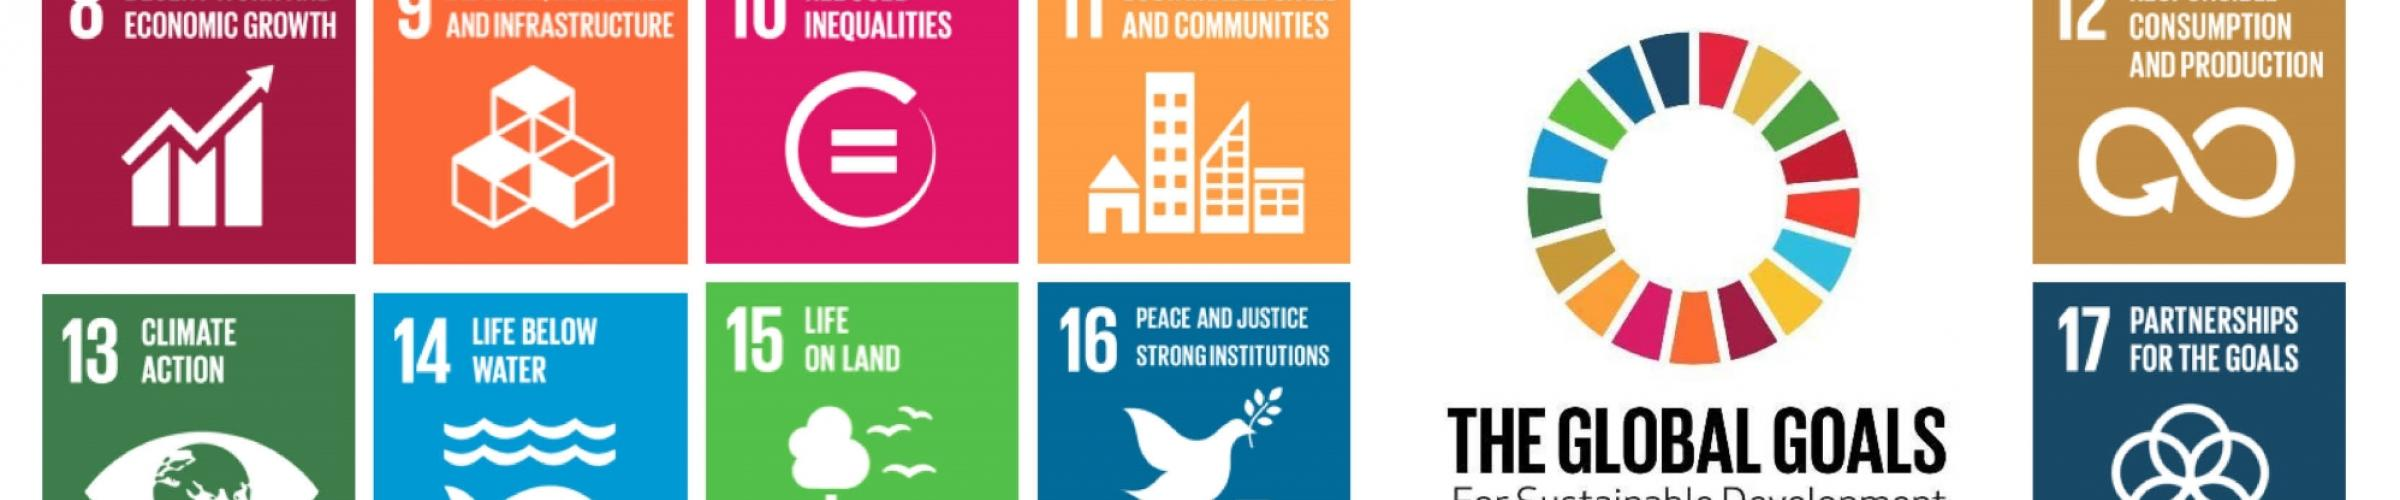 NEW COURSE! Teaching the Sustainable Development Goals (SDGs): 17 Goals to Transform Our World and our Classroom